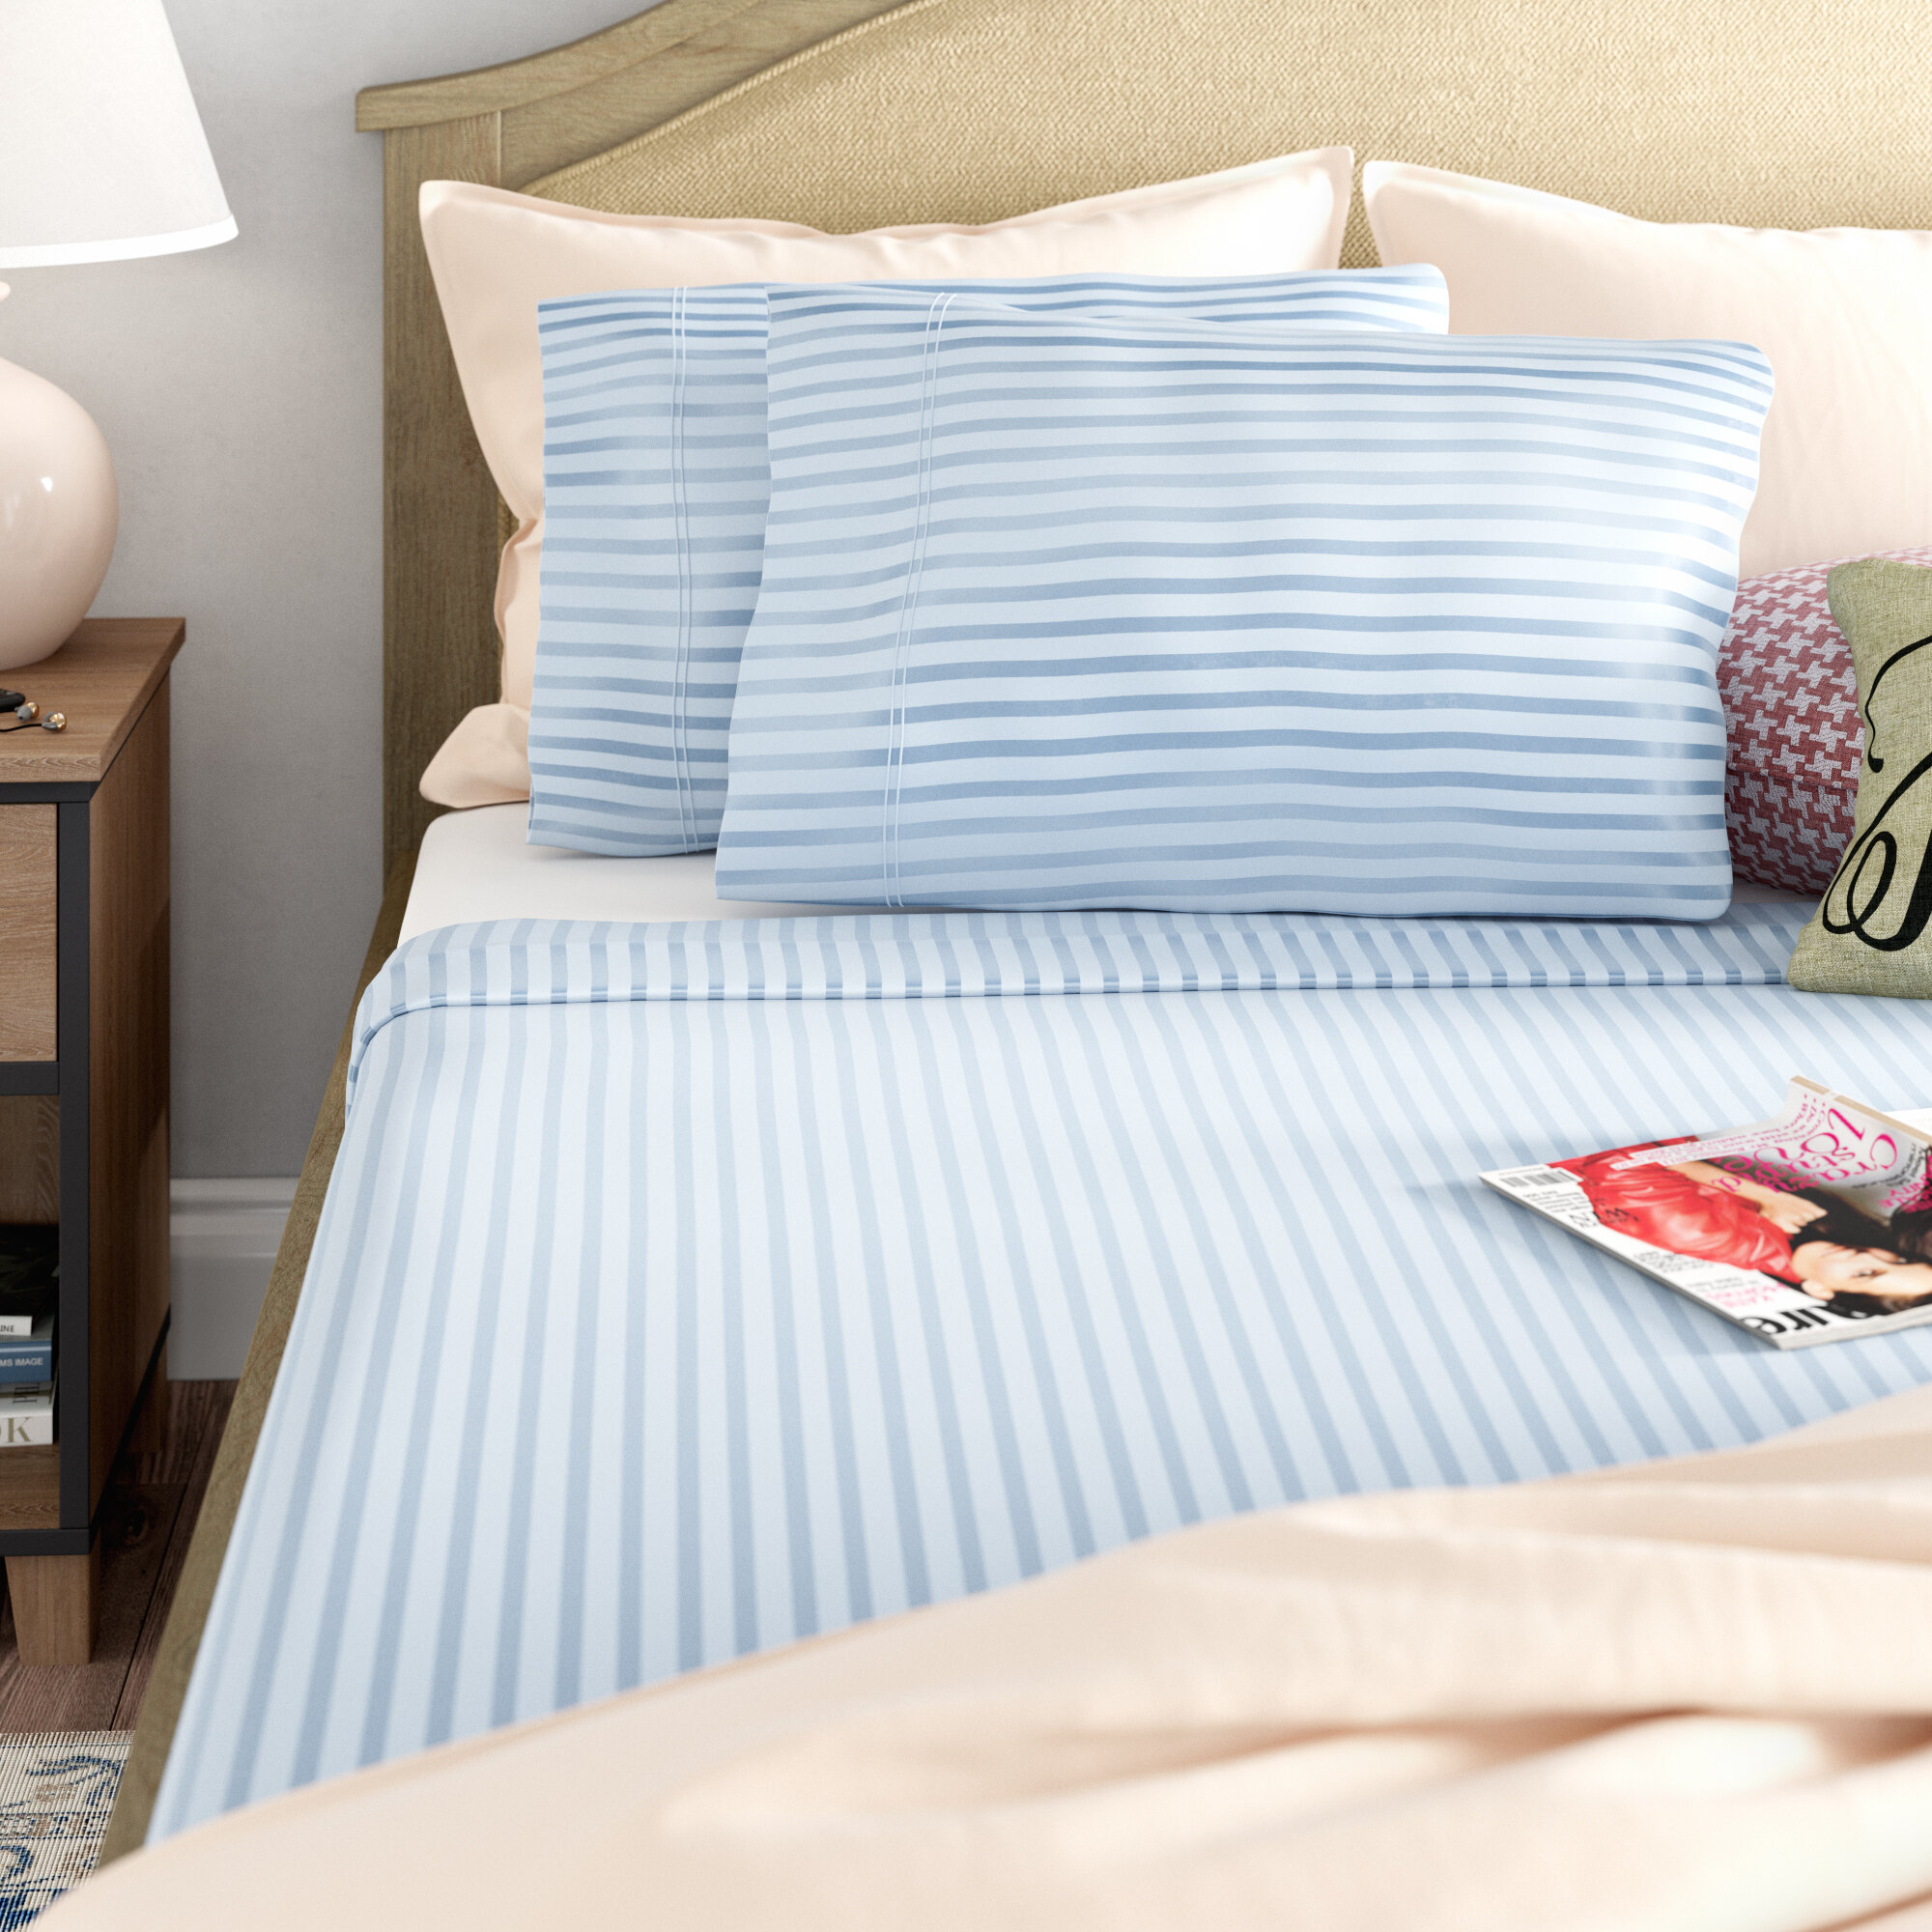 USA Multi Size//Colors Fitted Sheet Cotton 1 Piece 400 Thread Count Extra Deep